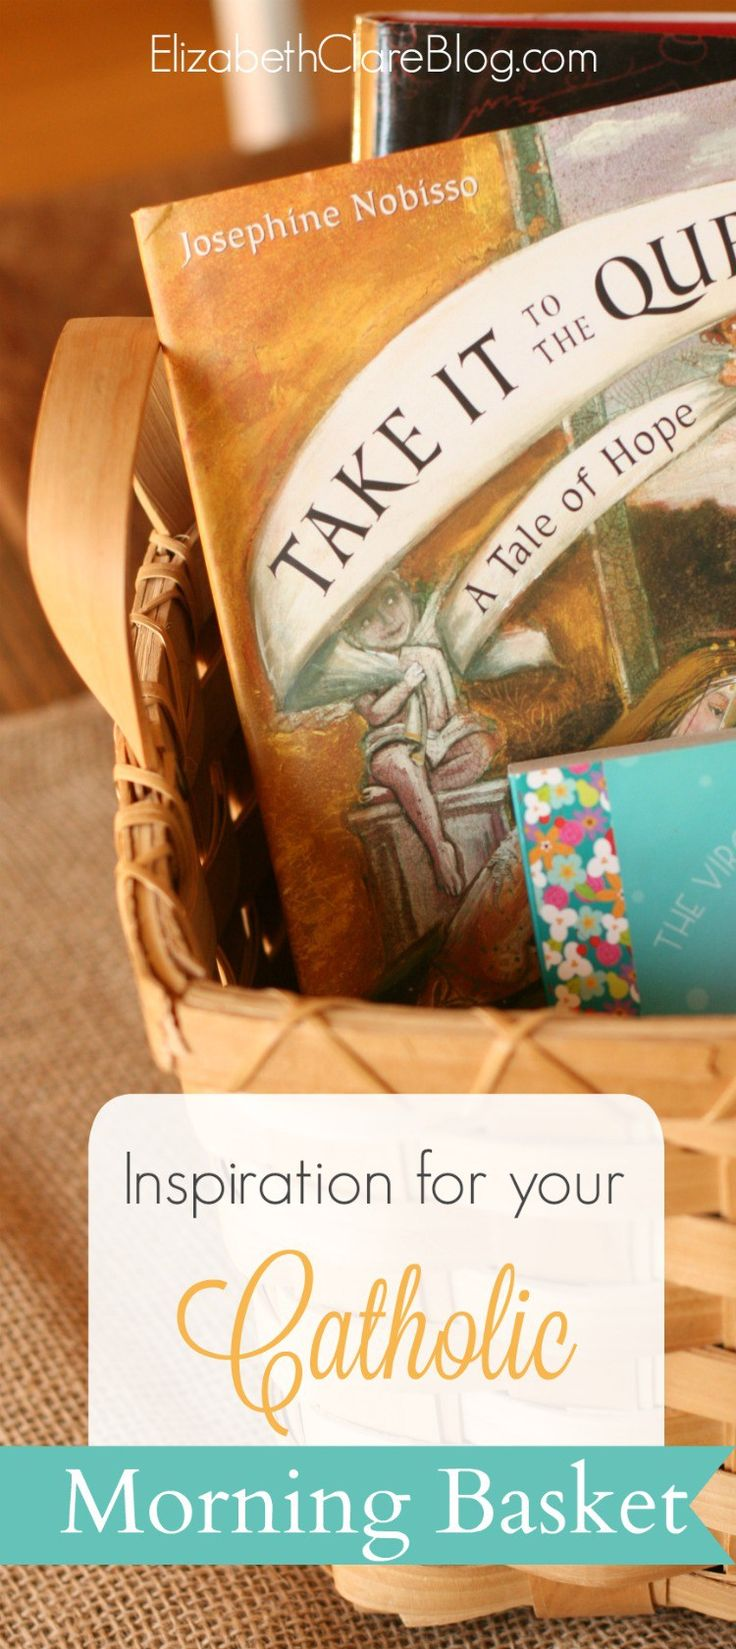 Ideas for morning basket, circle time inspiration in your Catholic homeschool.